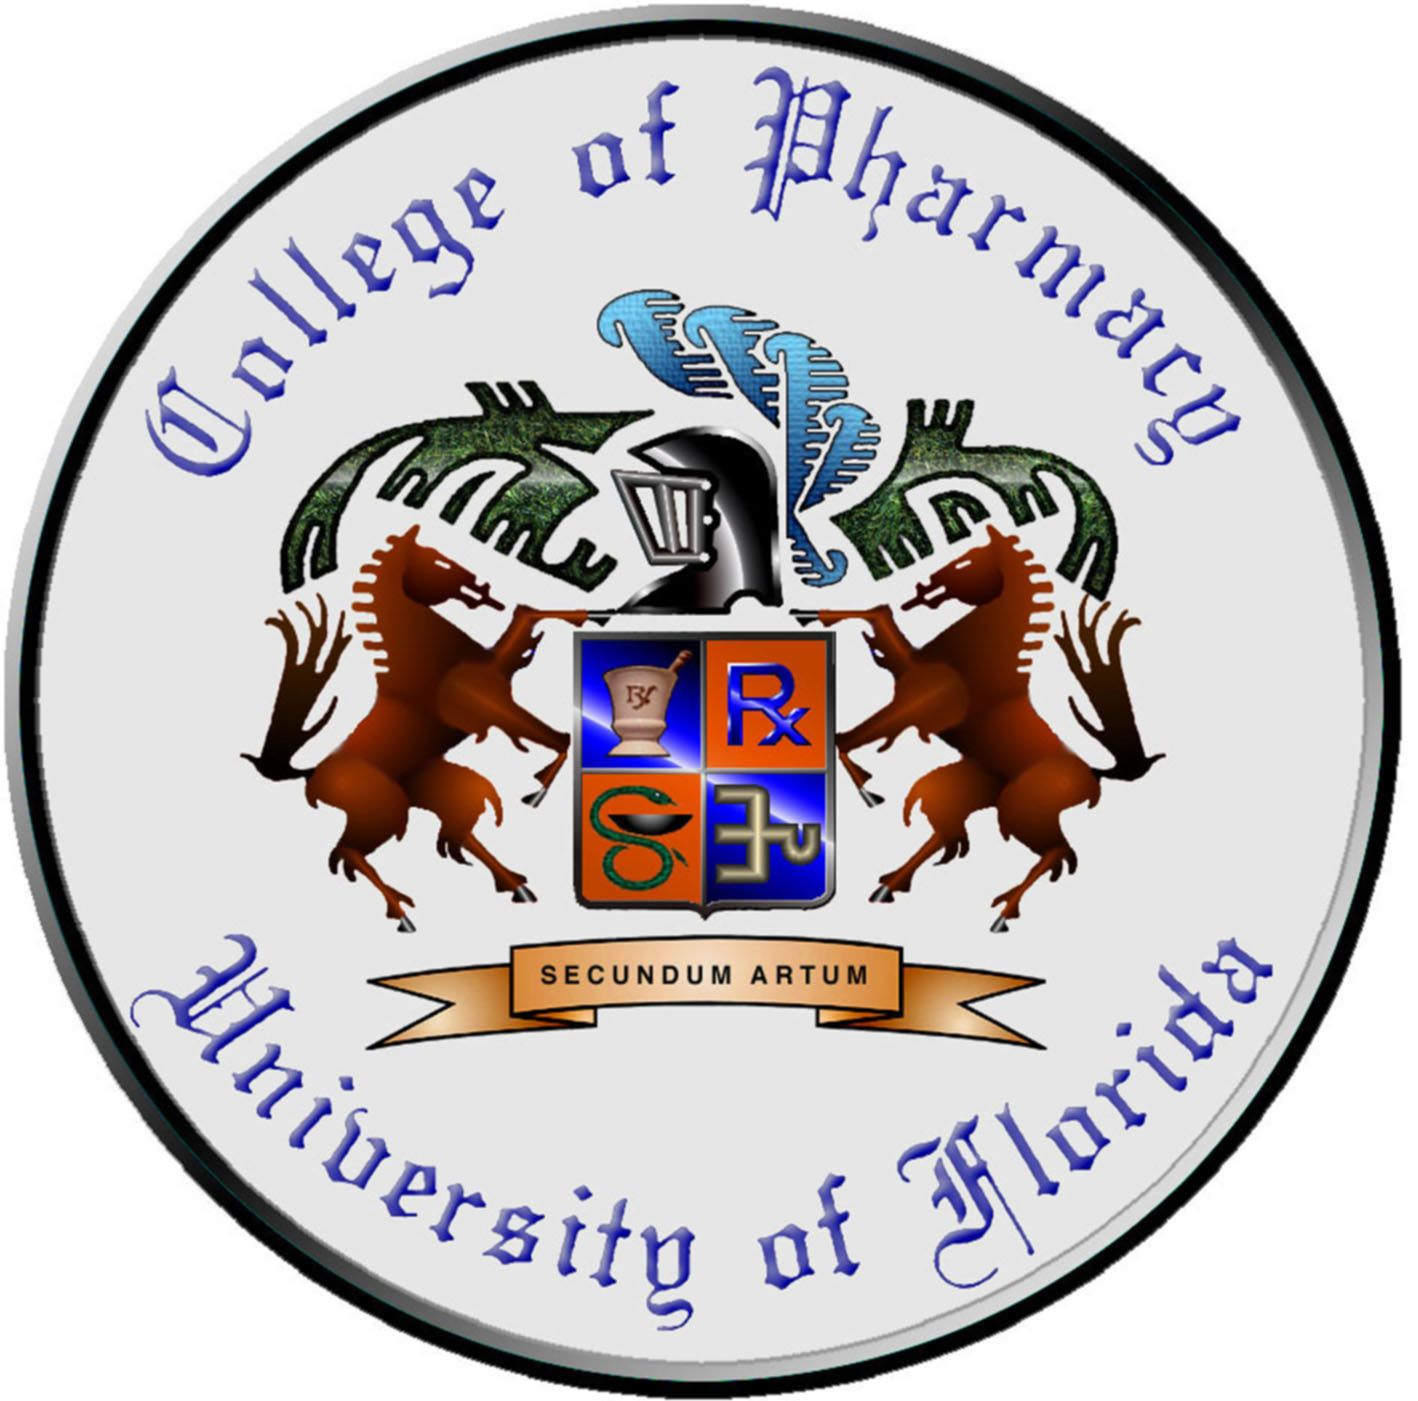 Get accepted to UF to pursue my Doctor of Pharmacy Degree